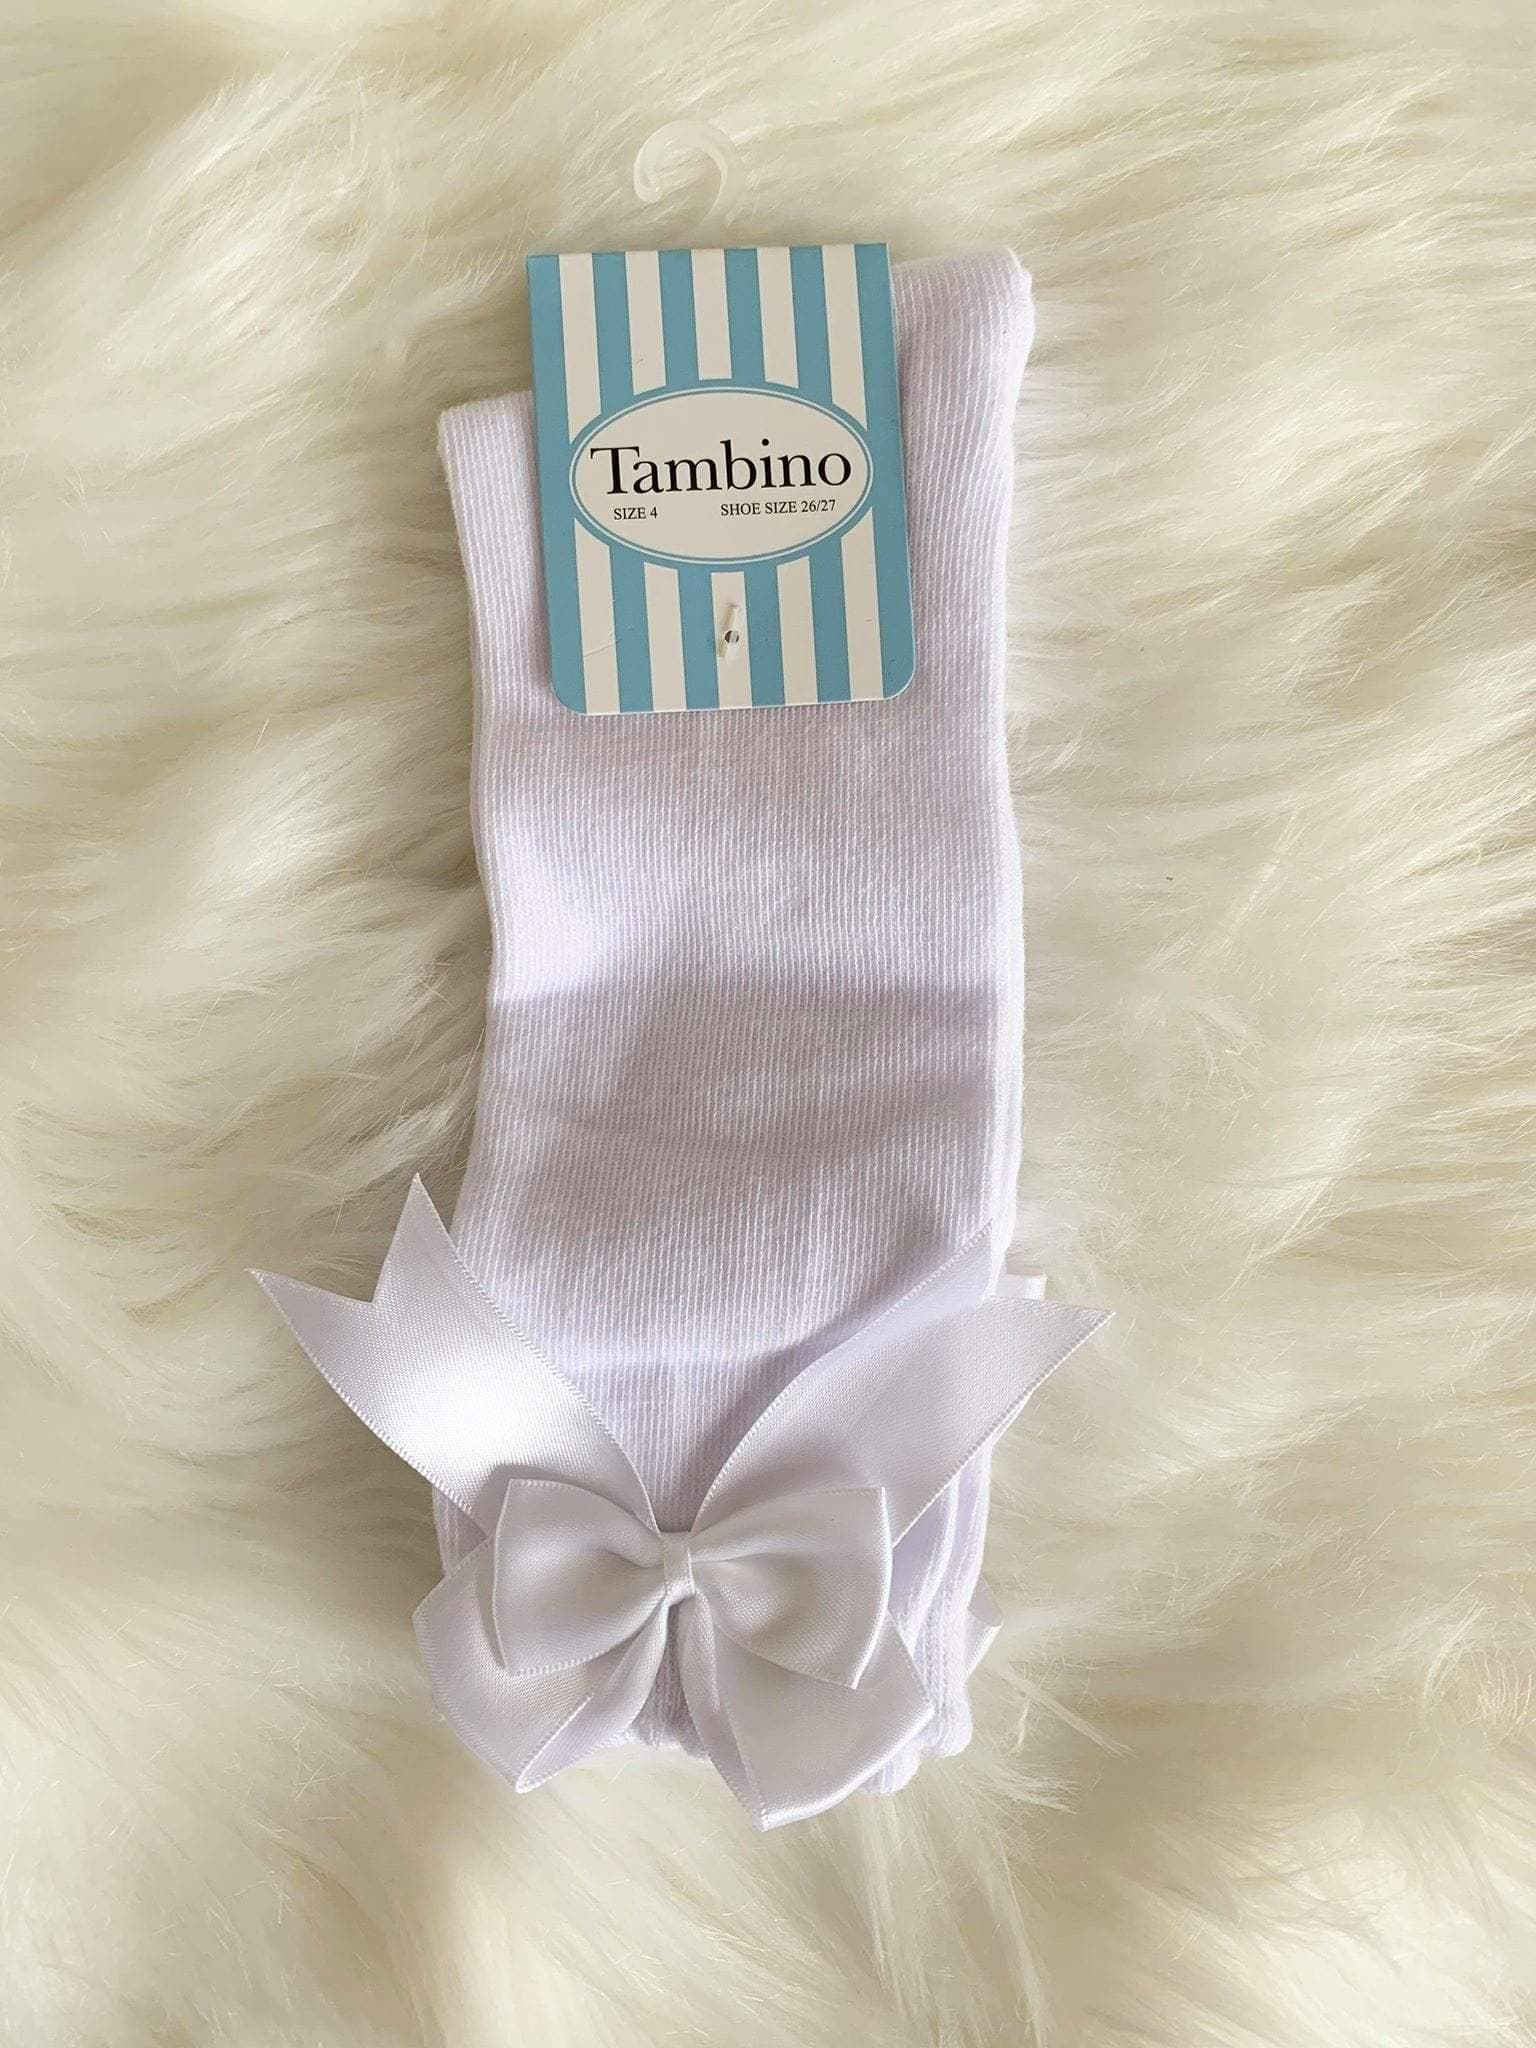 Tambino Footwear Socks - White Knee High Bow Socks